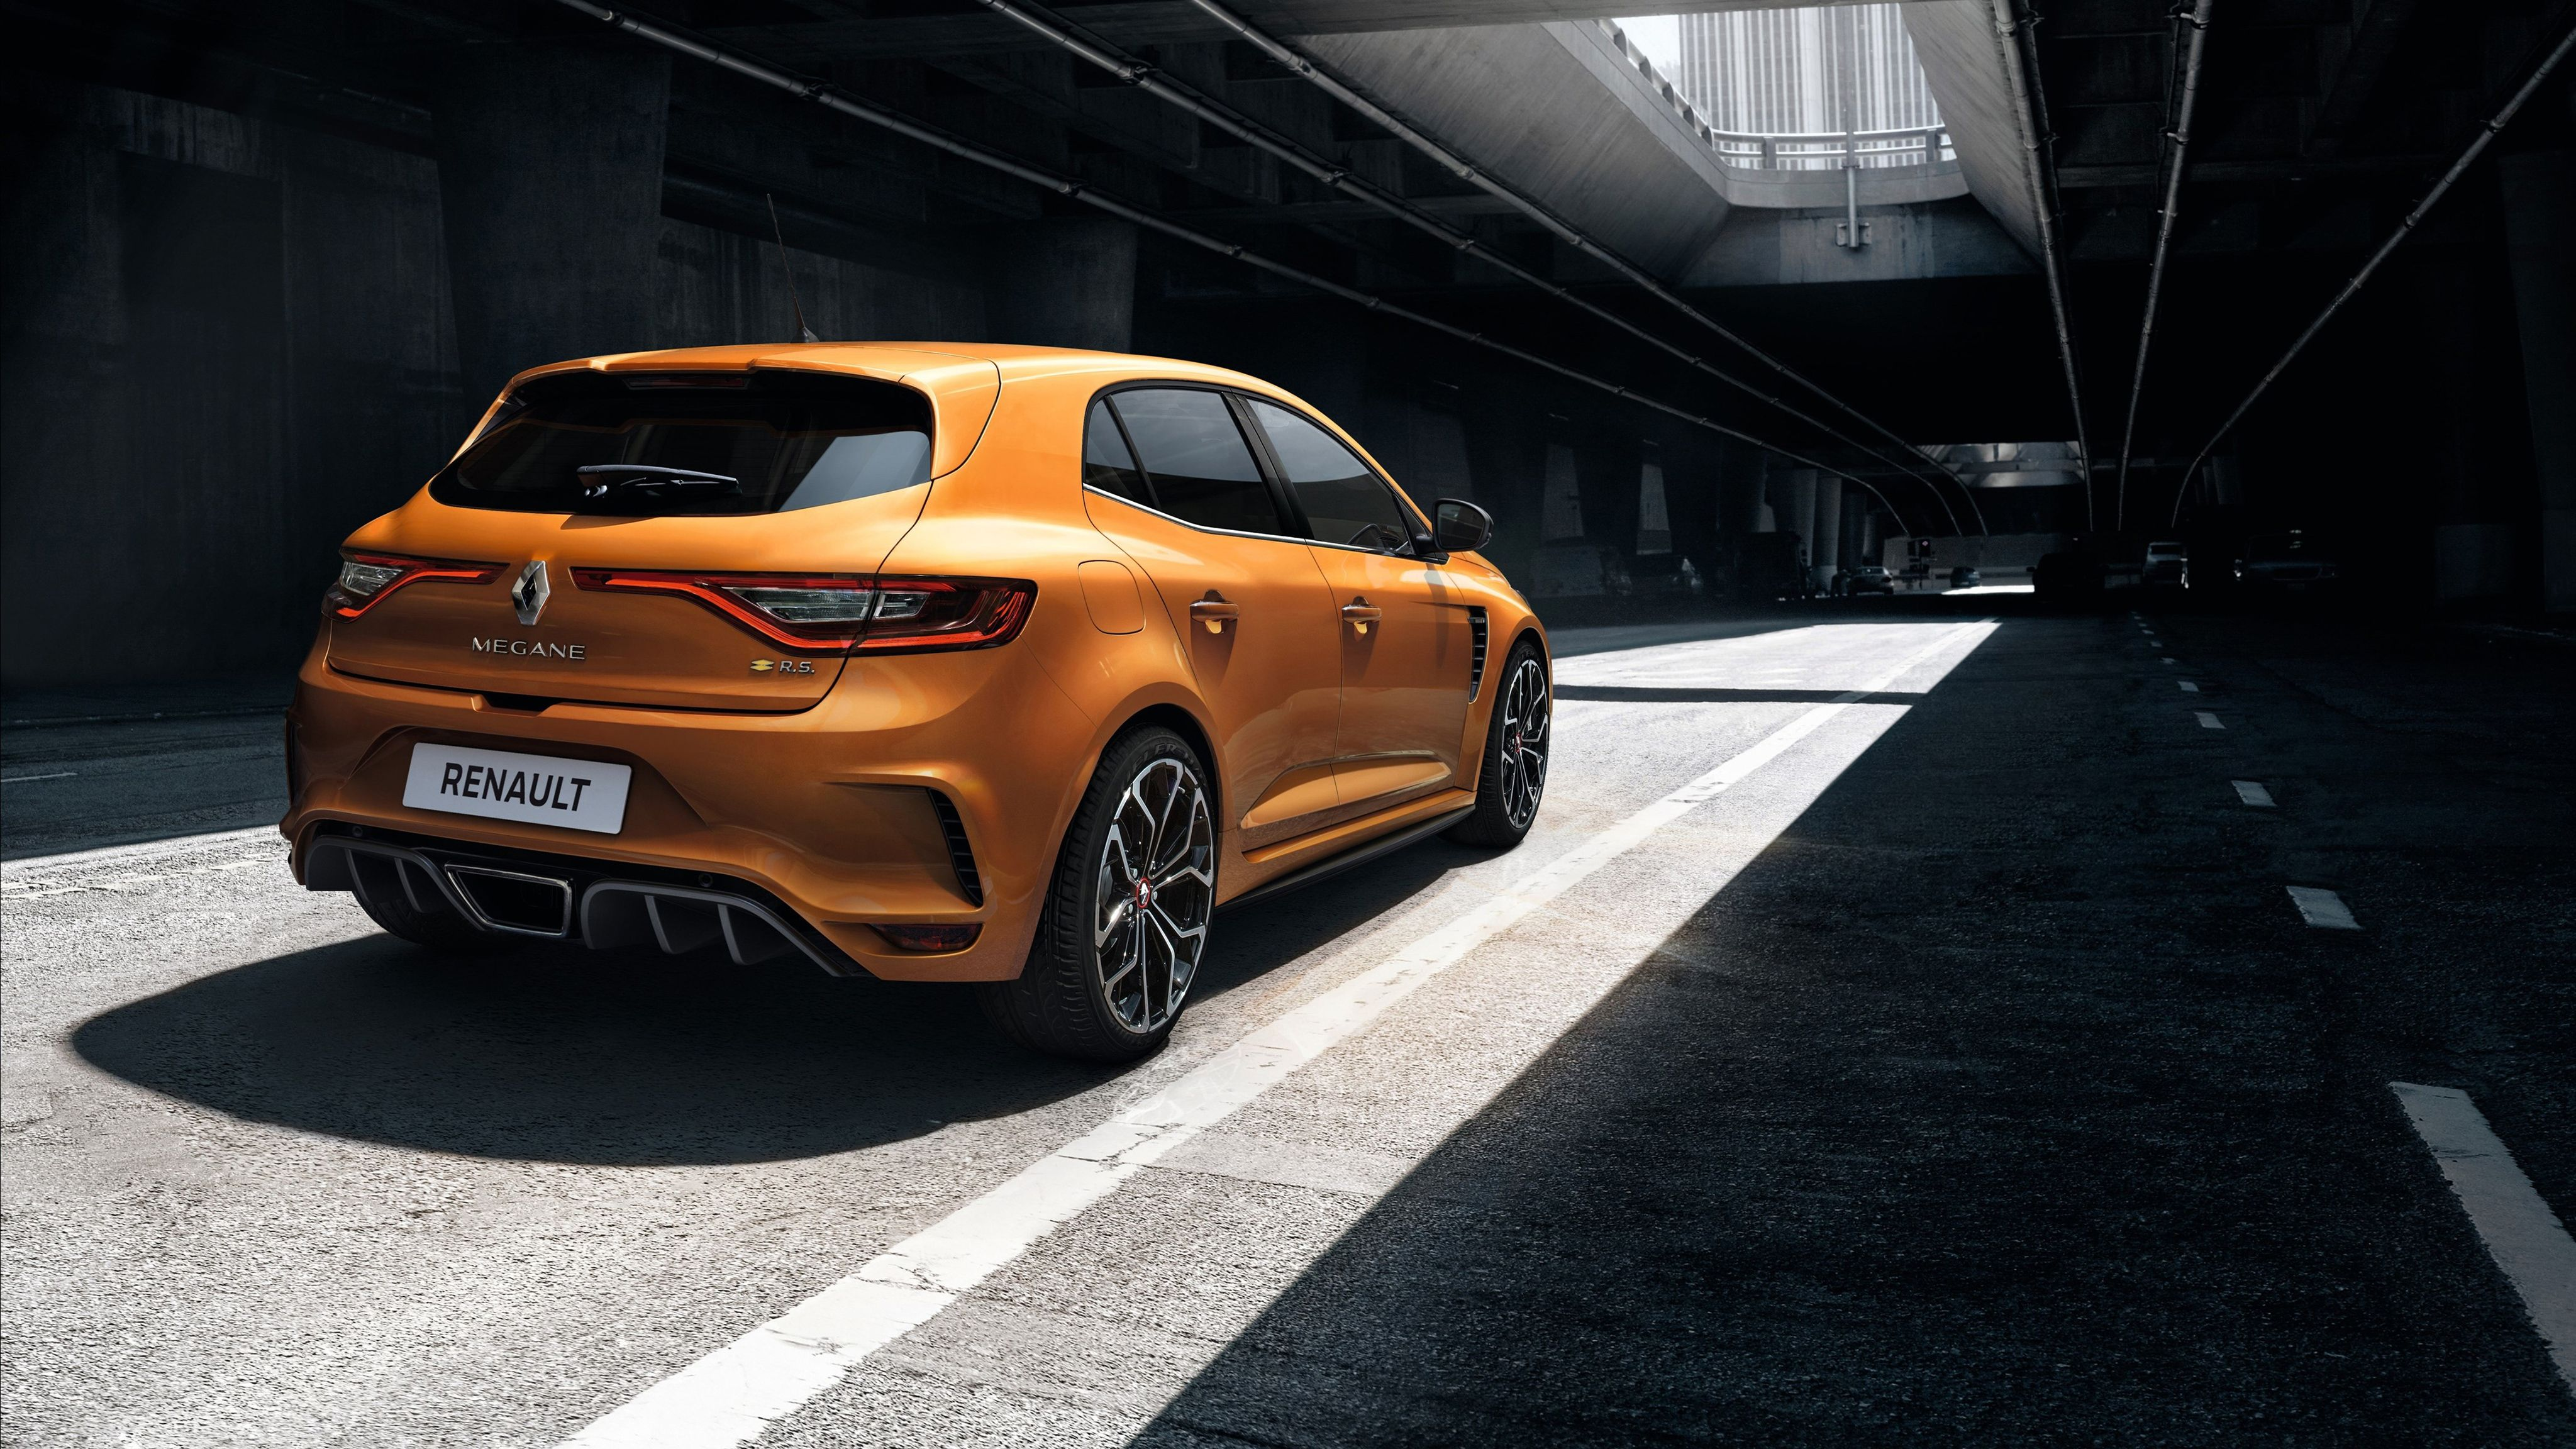 2018 Renault Megane RS 4K 6 Wallpapers